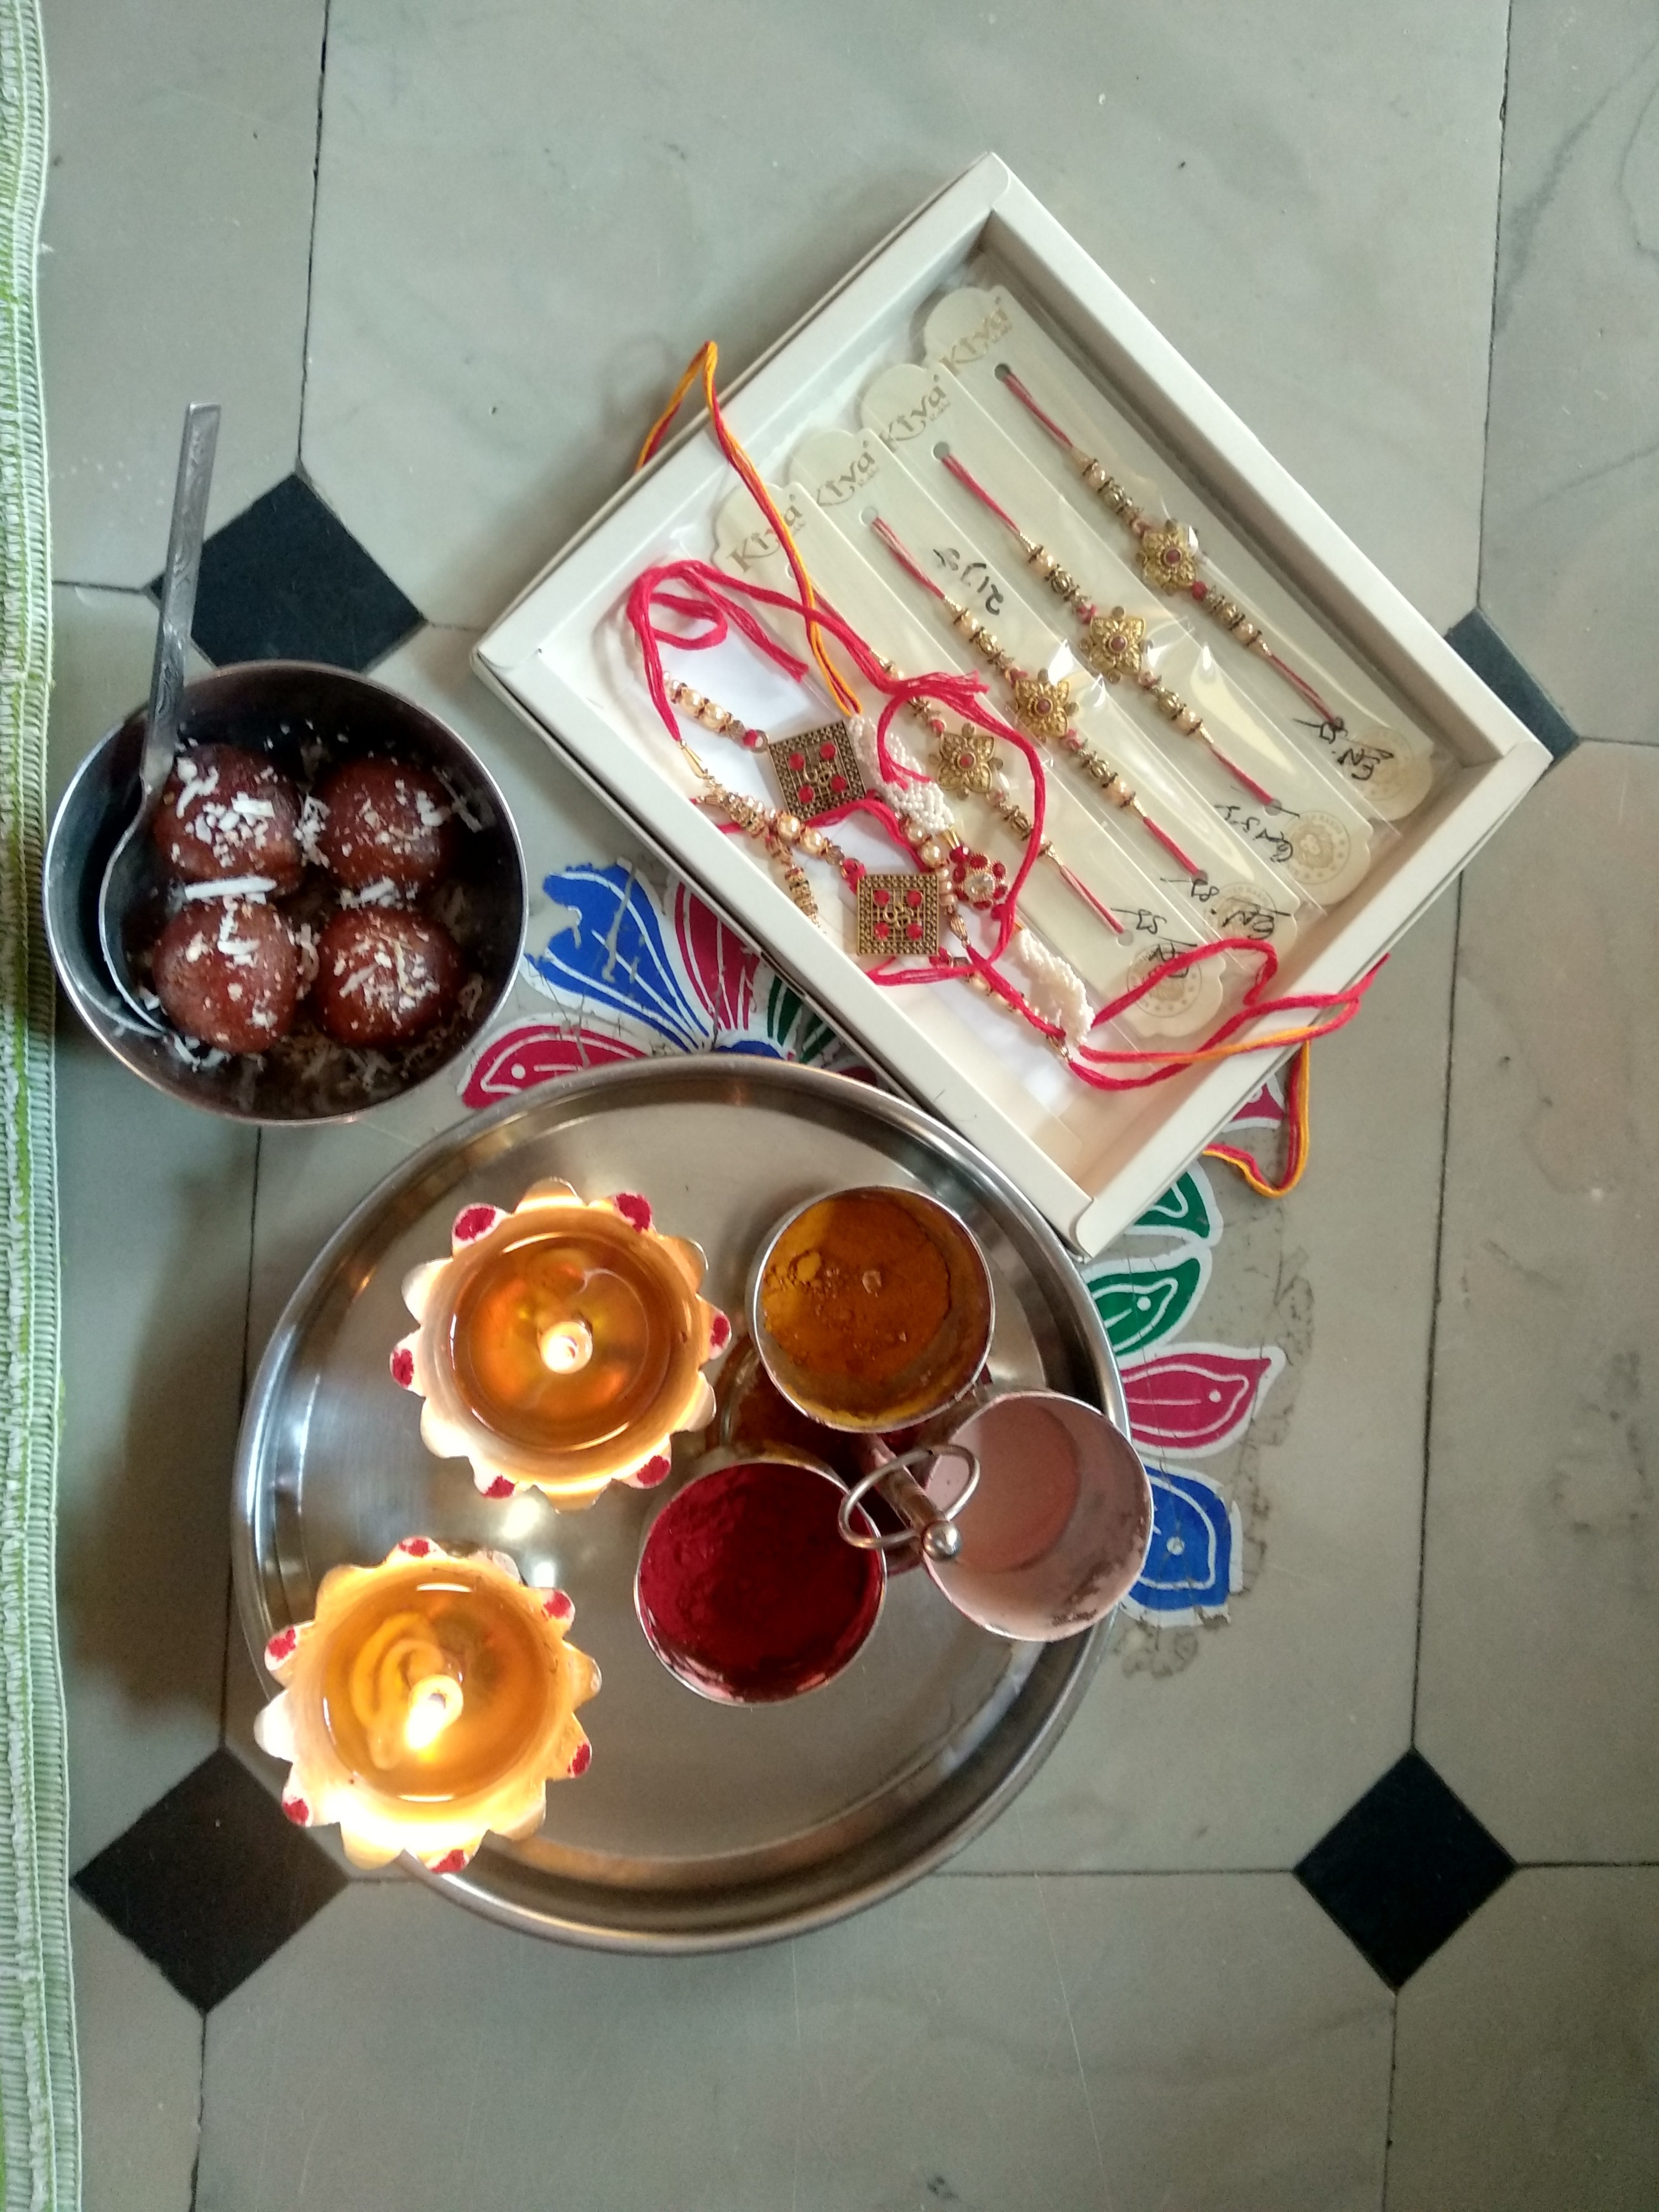 Food, candles and bracelets